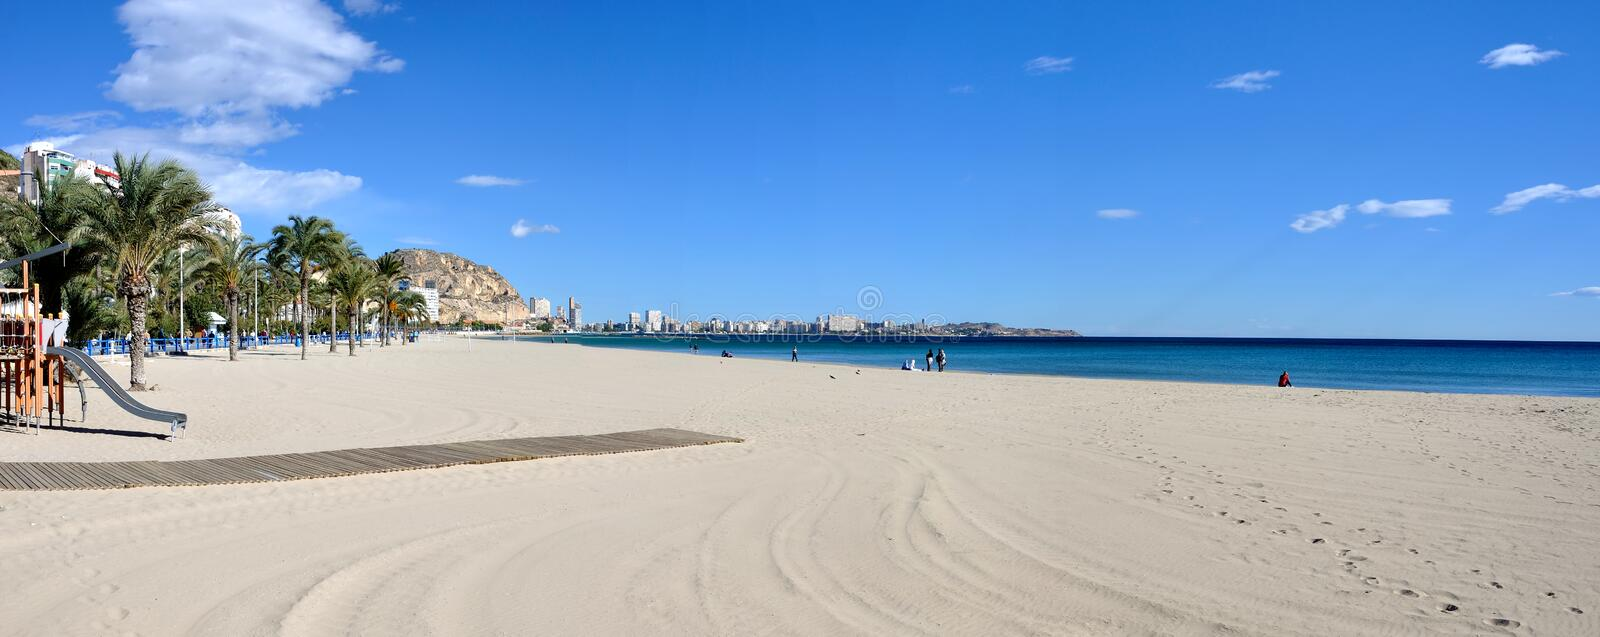 Download Panorama of Alicante beach stock photo. Image of landscape - 17937754